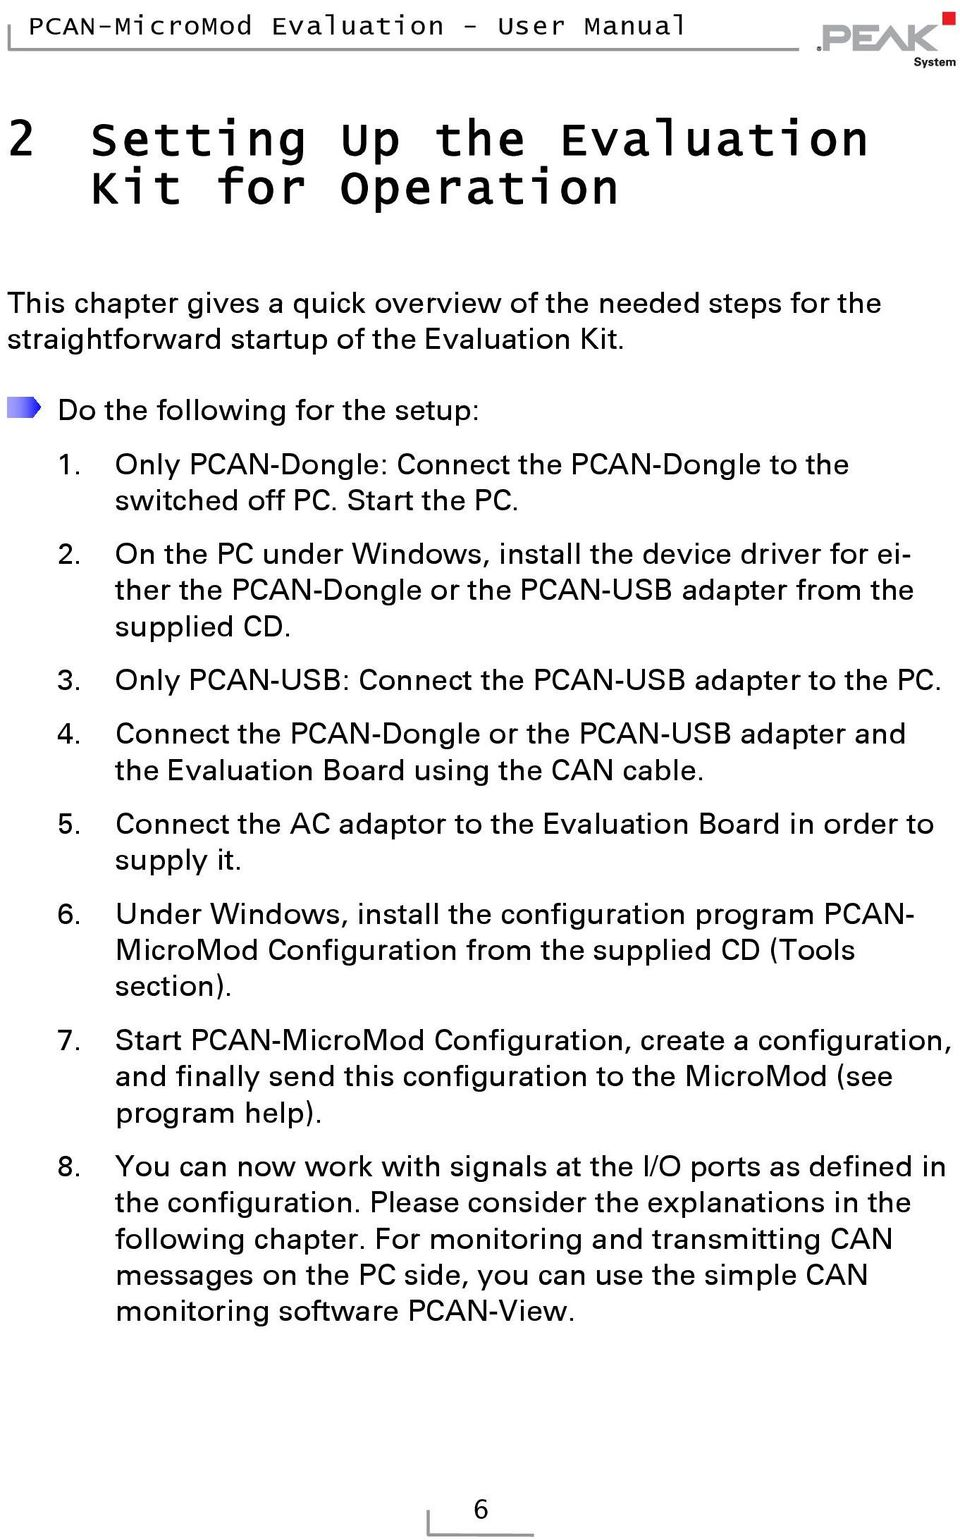 . On the PC under Windows, install the device driver for either the PCAN-Dongle or the PCAN-USB adapter from the supplied CD.. Only PCAN-USB: Connect the PCAN-USB adapter to the PC.